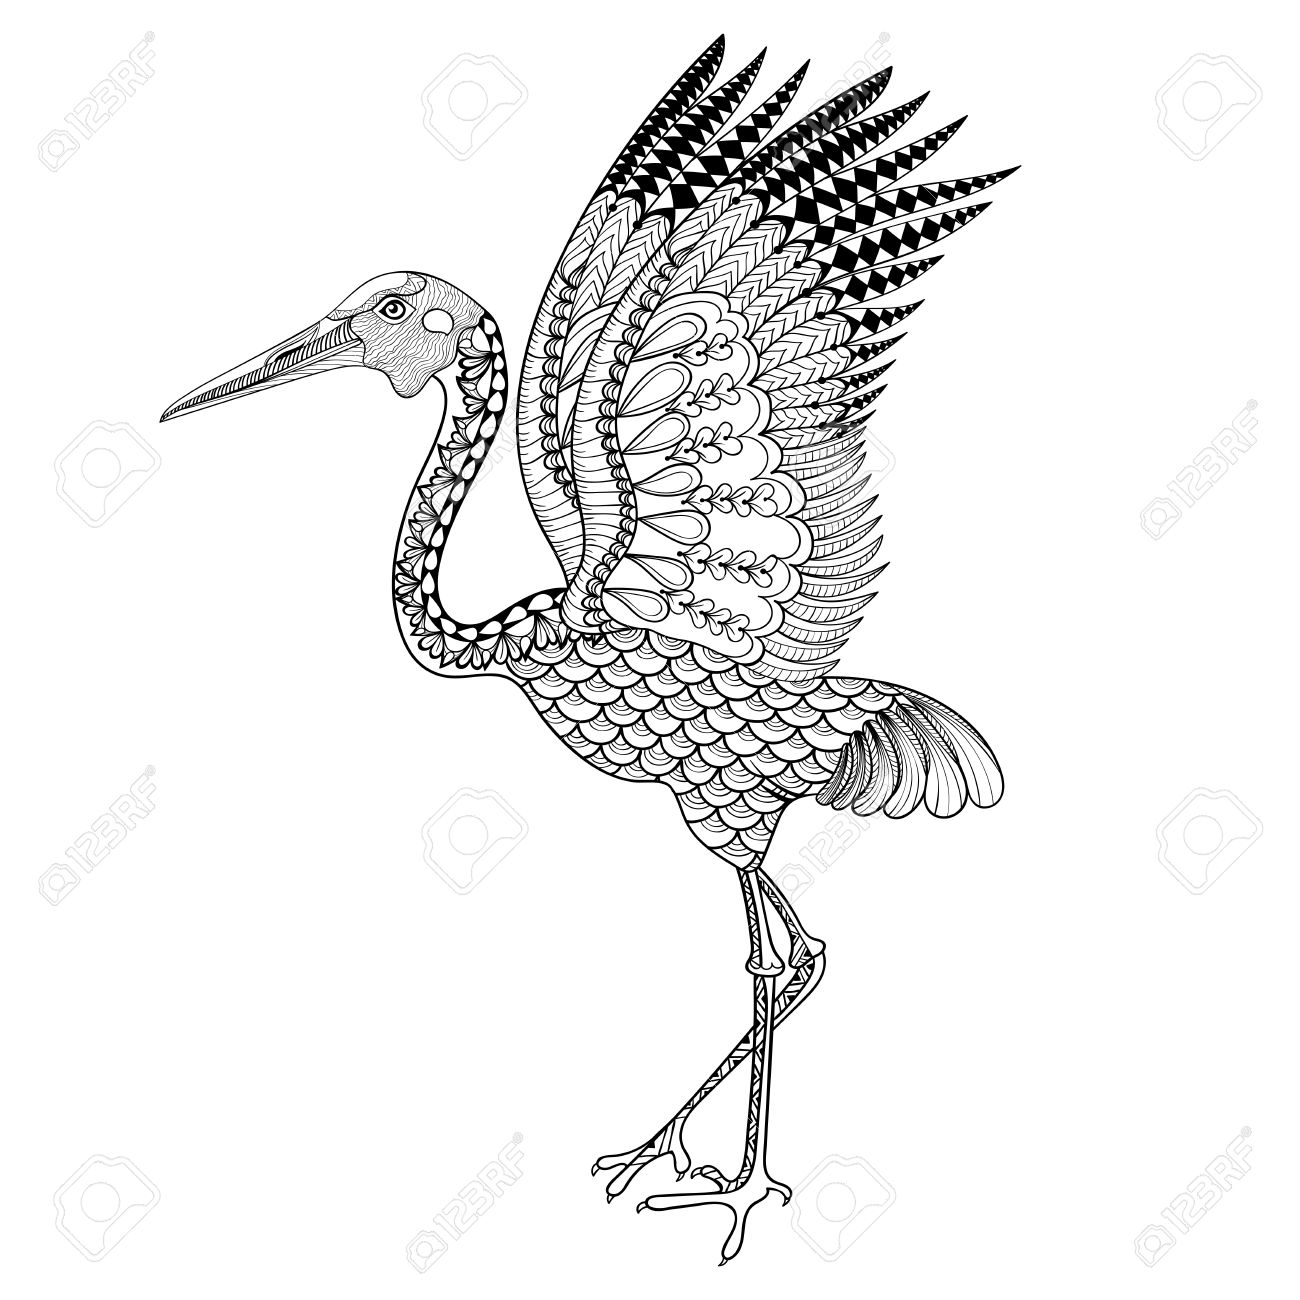 Hand Drawn Brolga, Australian Crane Illustration For Antistress.